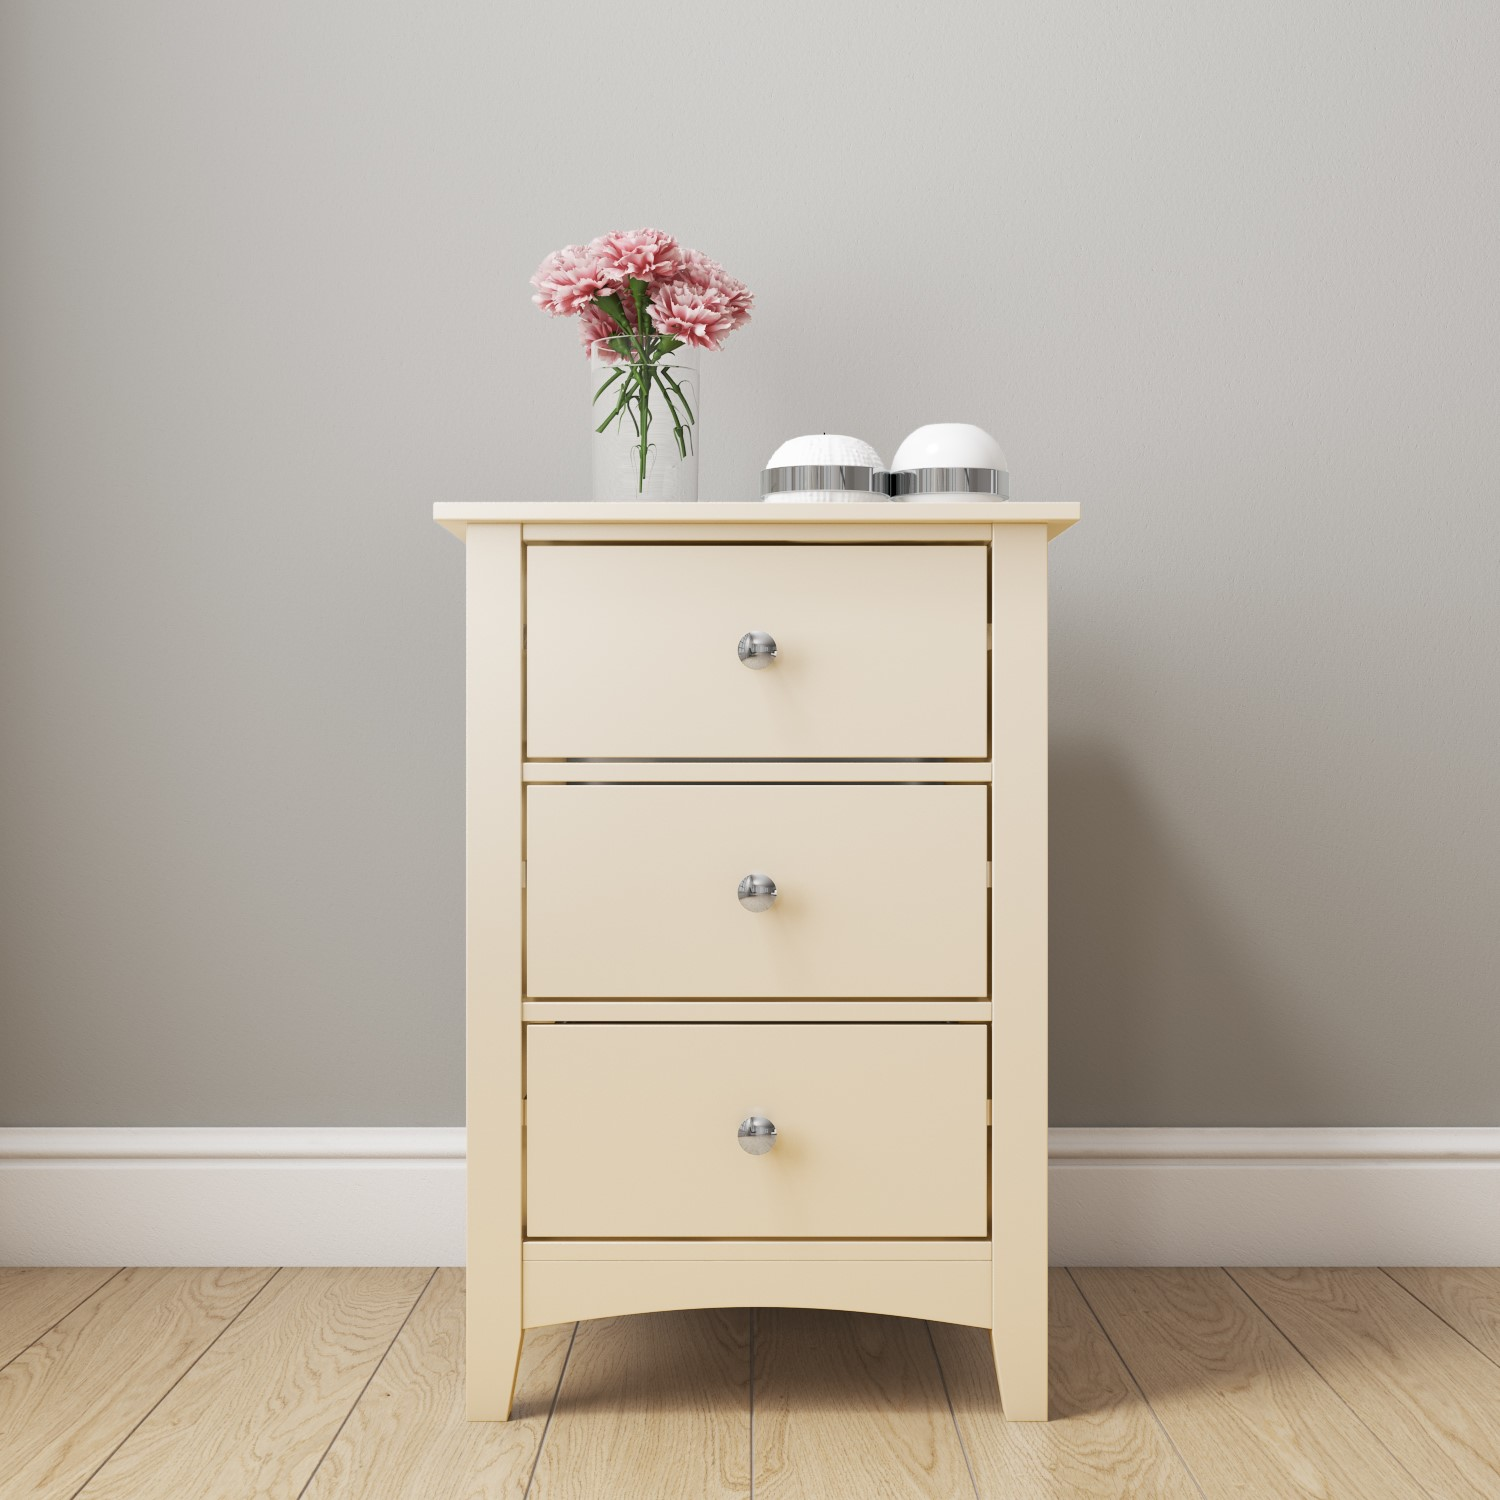 3 Drawer Bedside Table Storage Cabinet White Cream Ivory ...